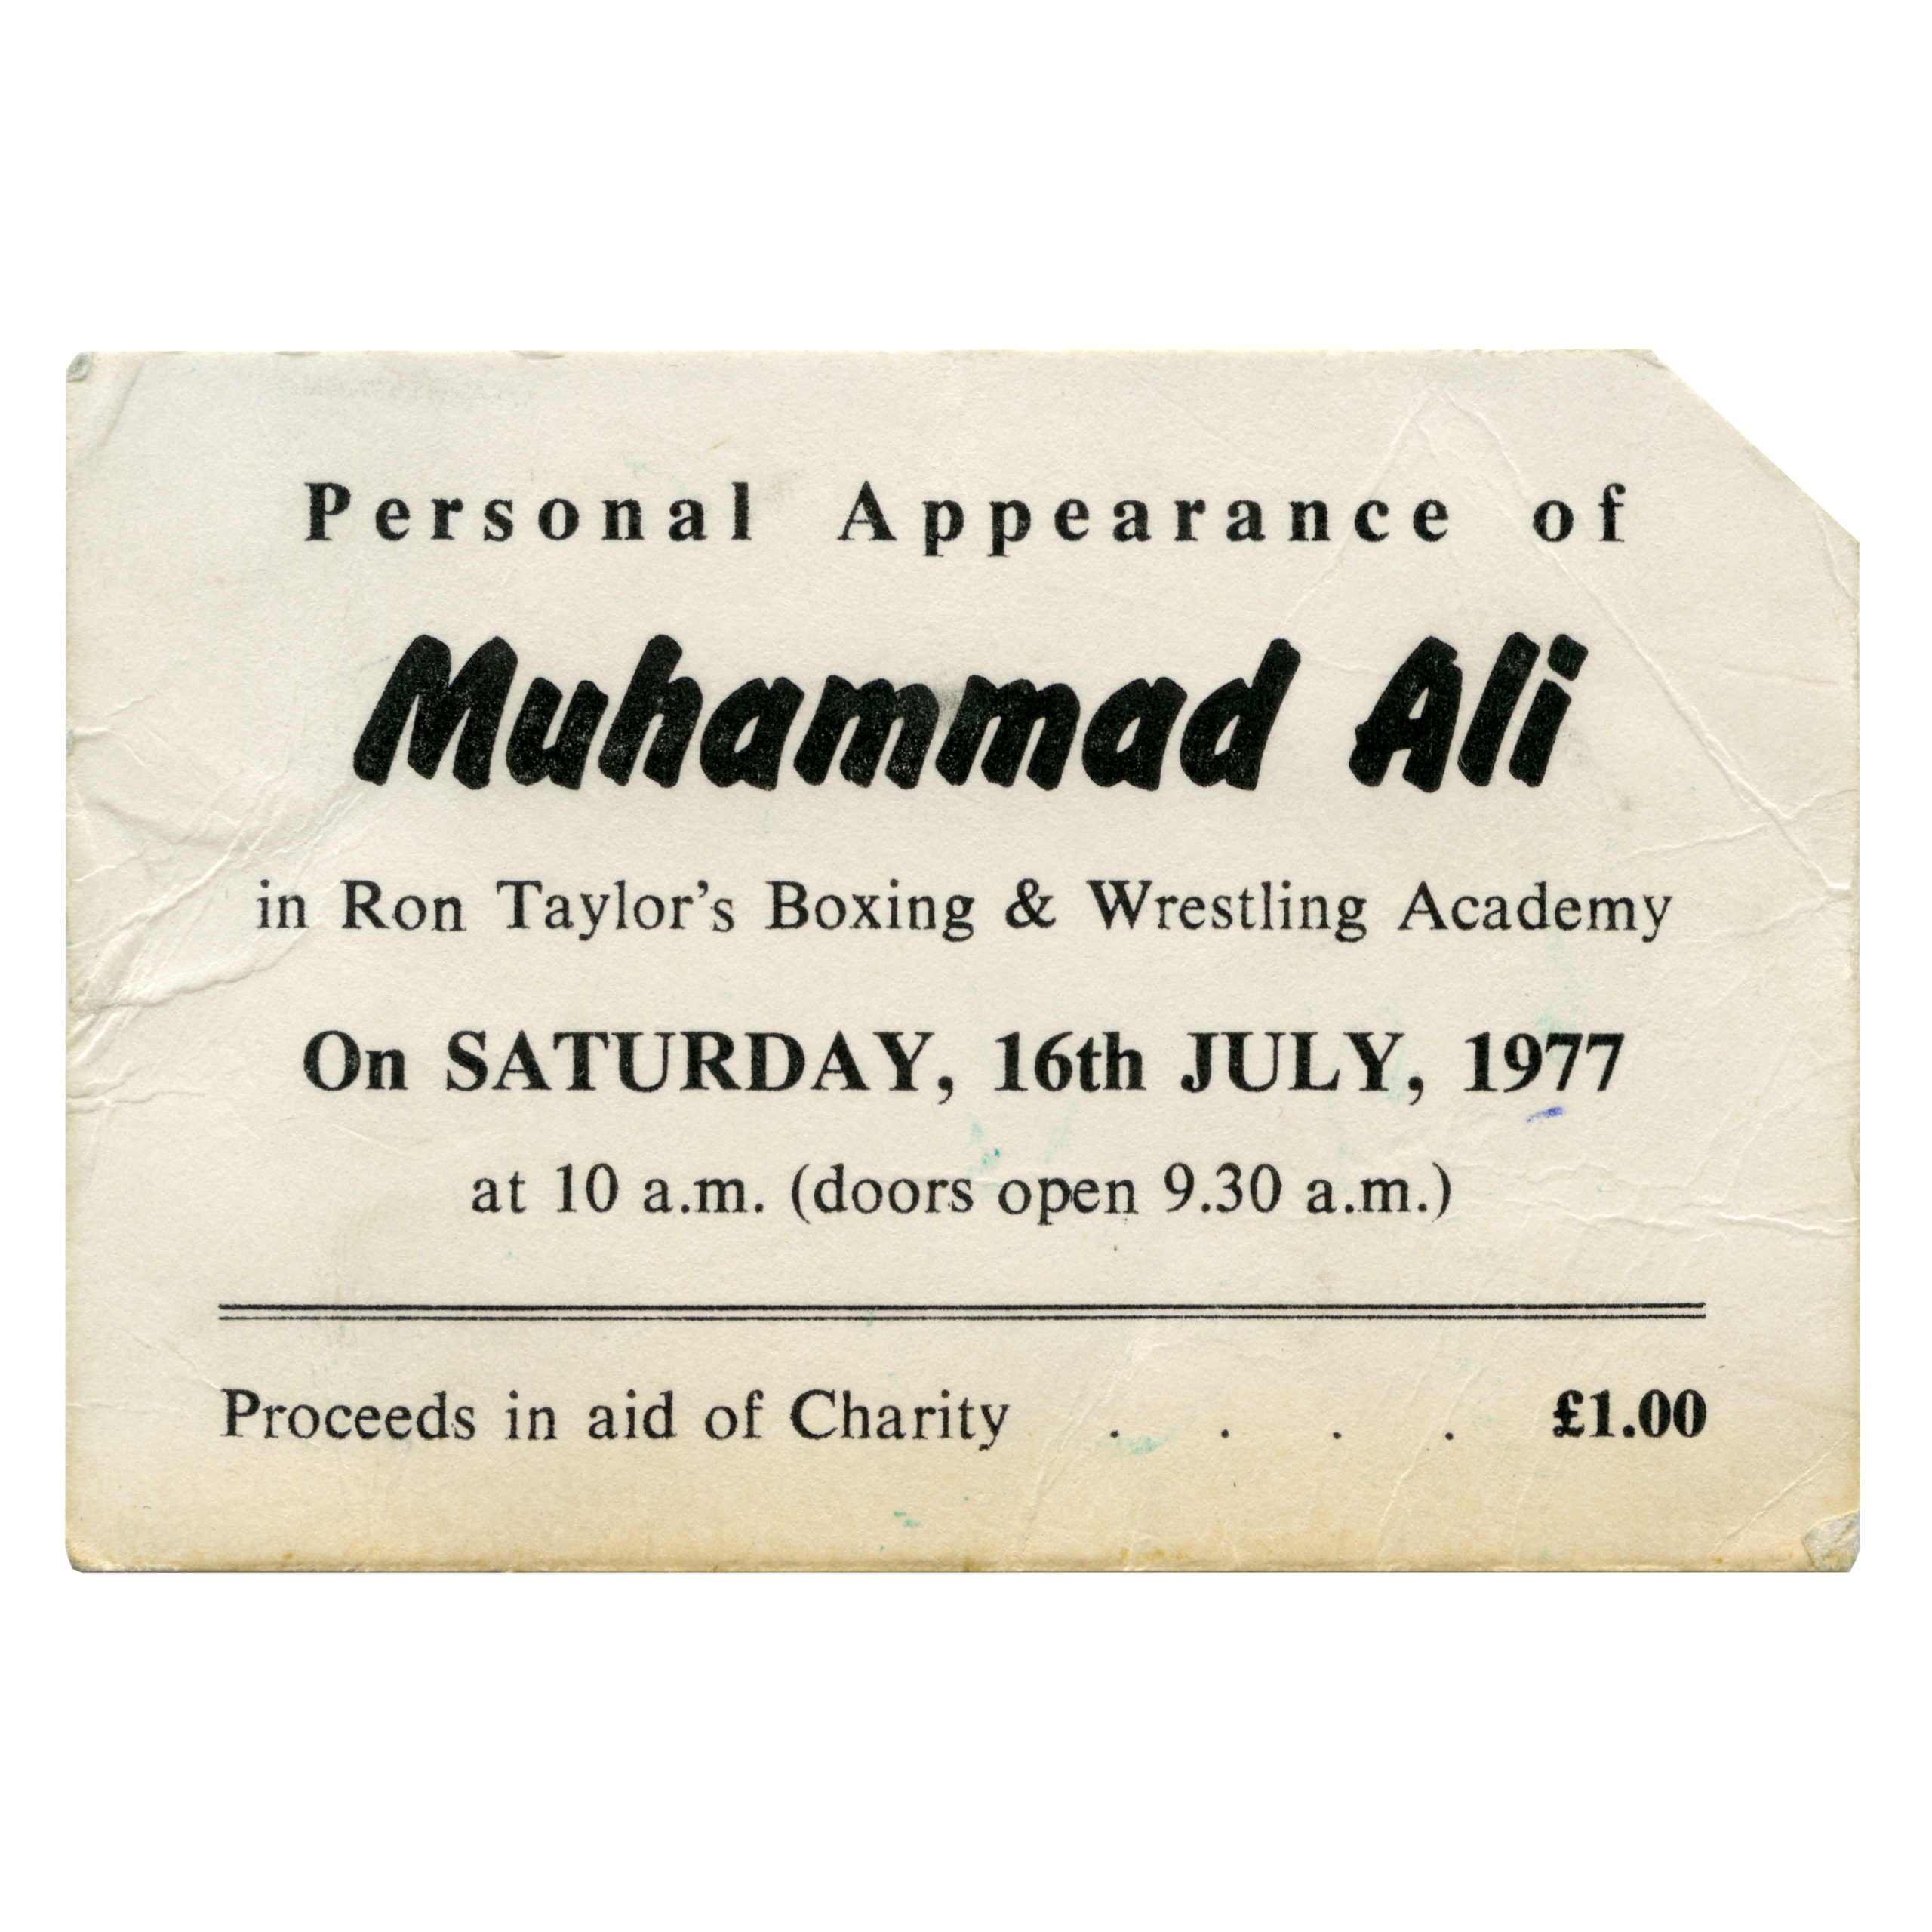 A ticket to see Muhammad Ali in Ron Taylor's boxing booth at South Shields, 16 July 1977